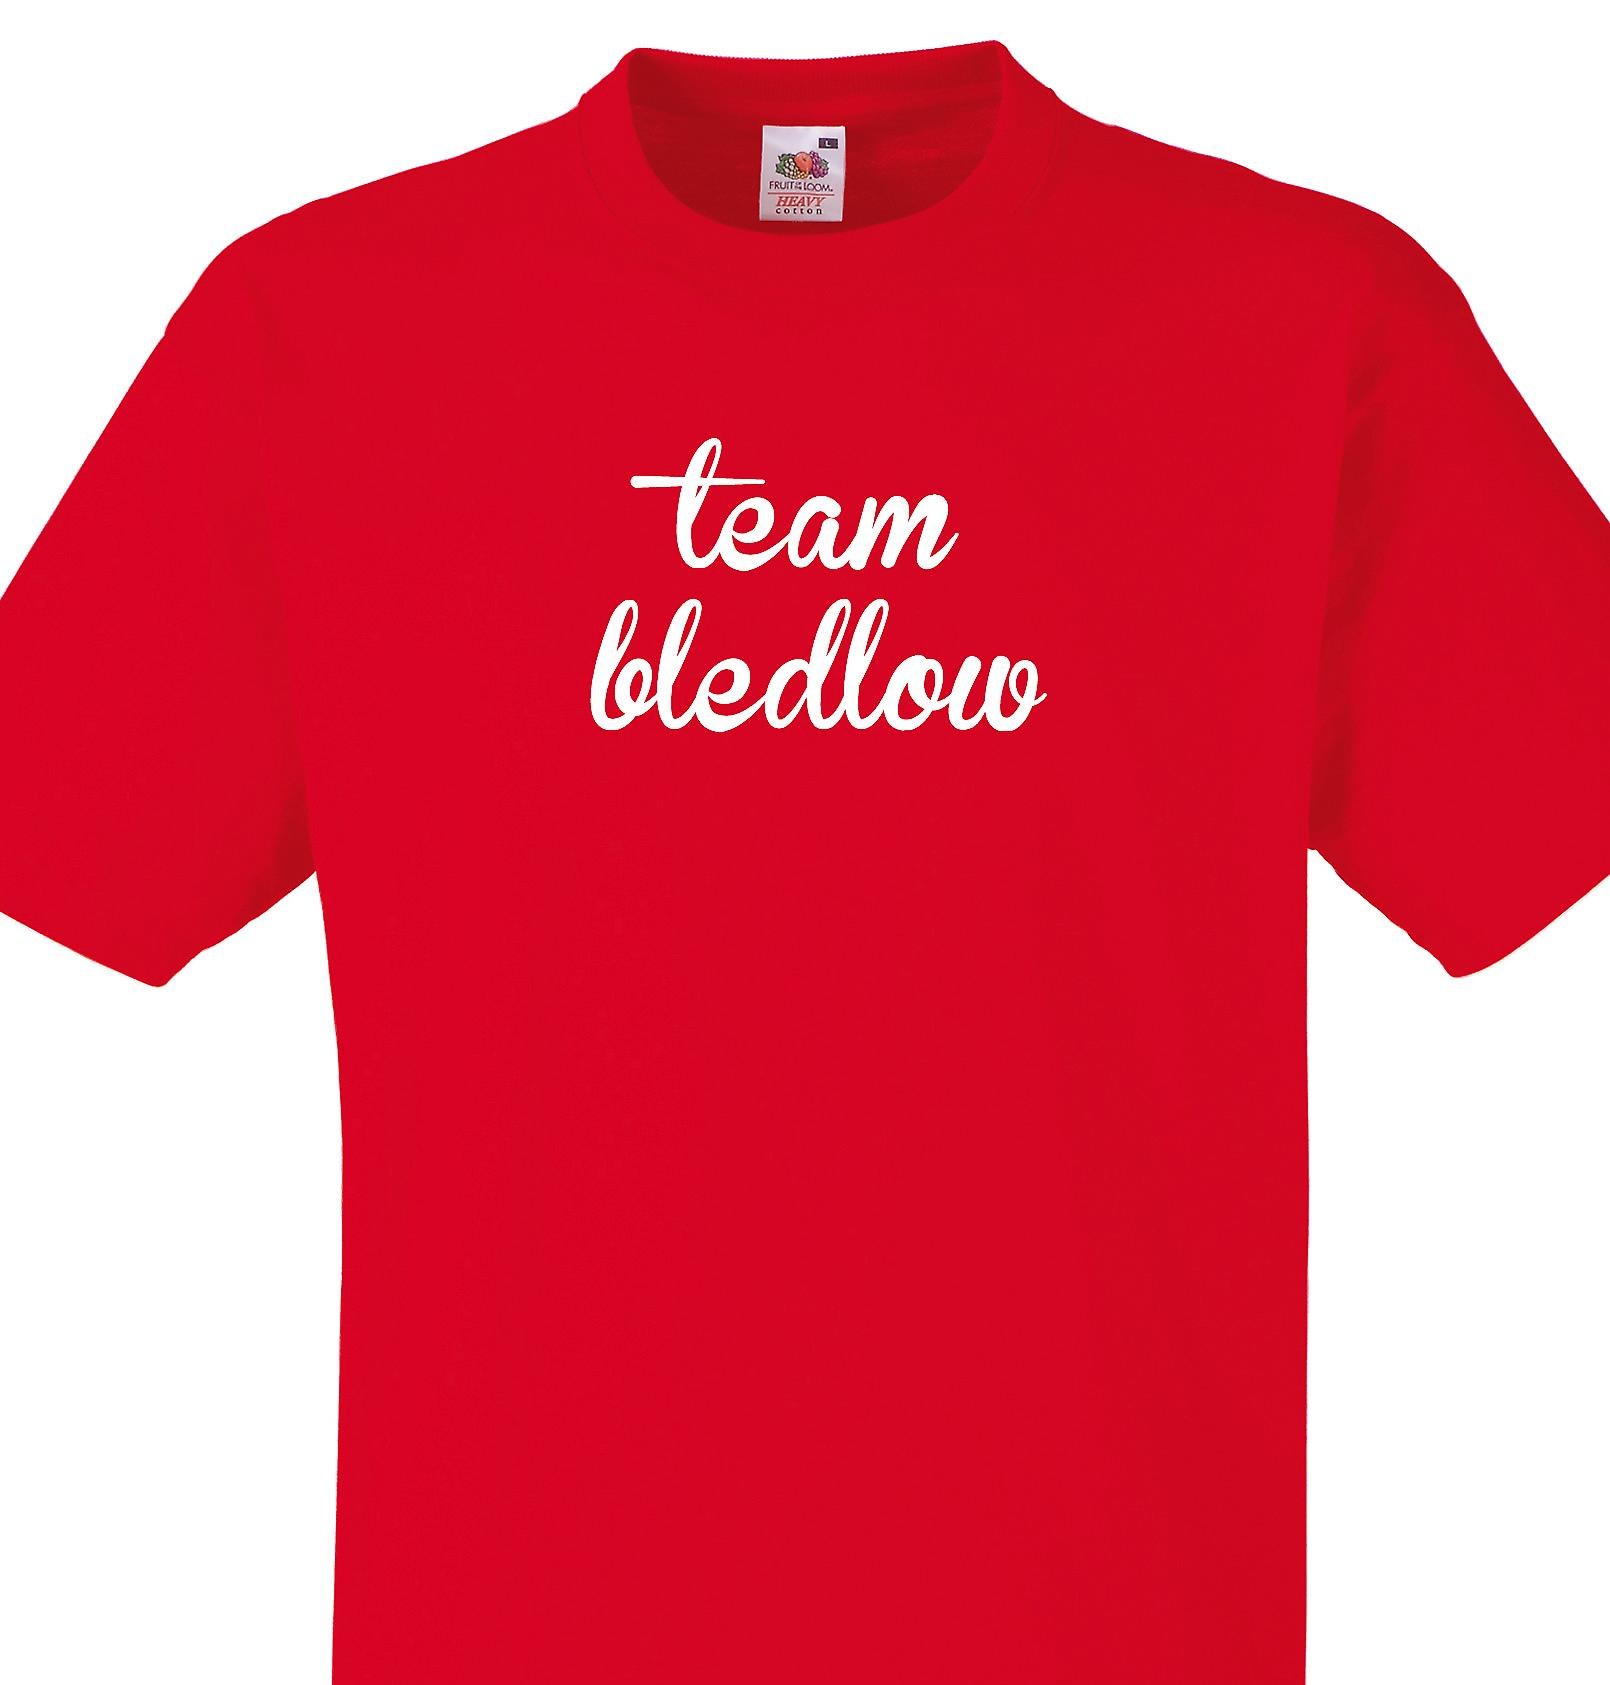 Team Bledlow Red T shirt